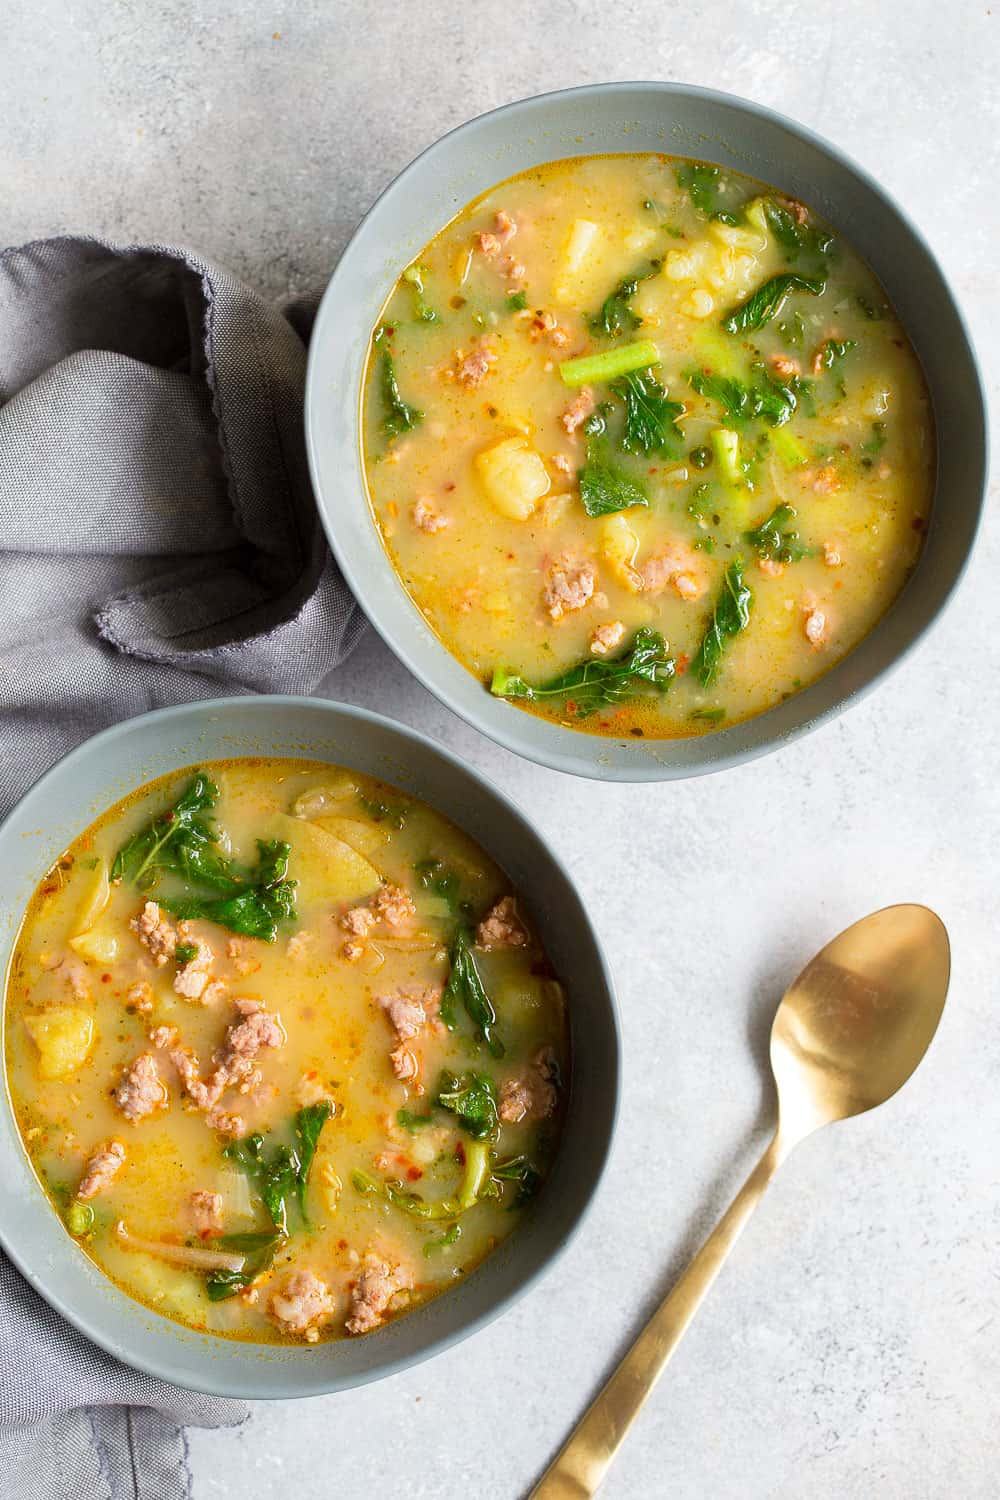 Two bowls of zuppa Toscana with a gold spoon on a gray background